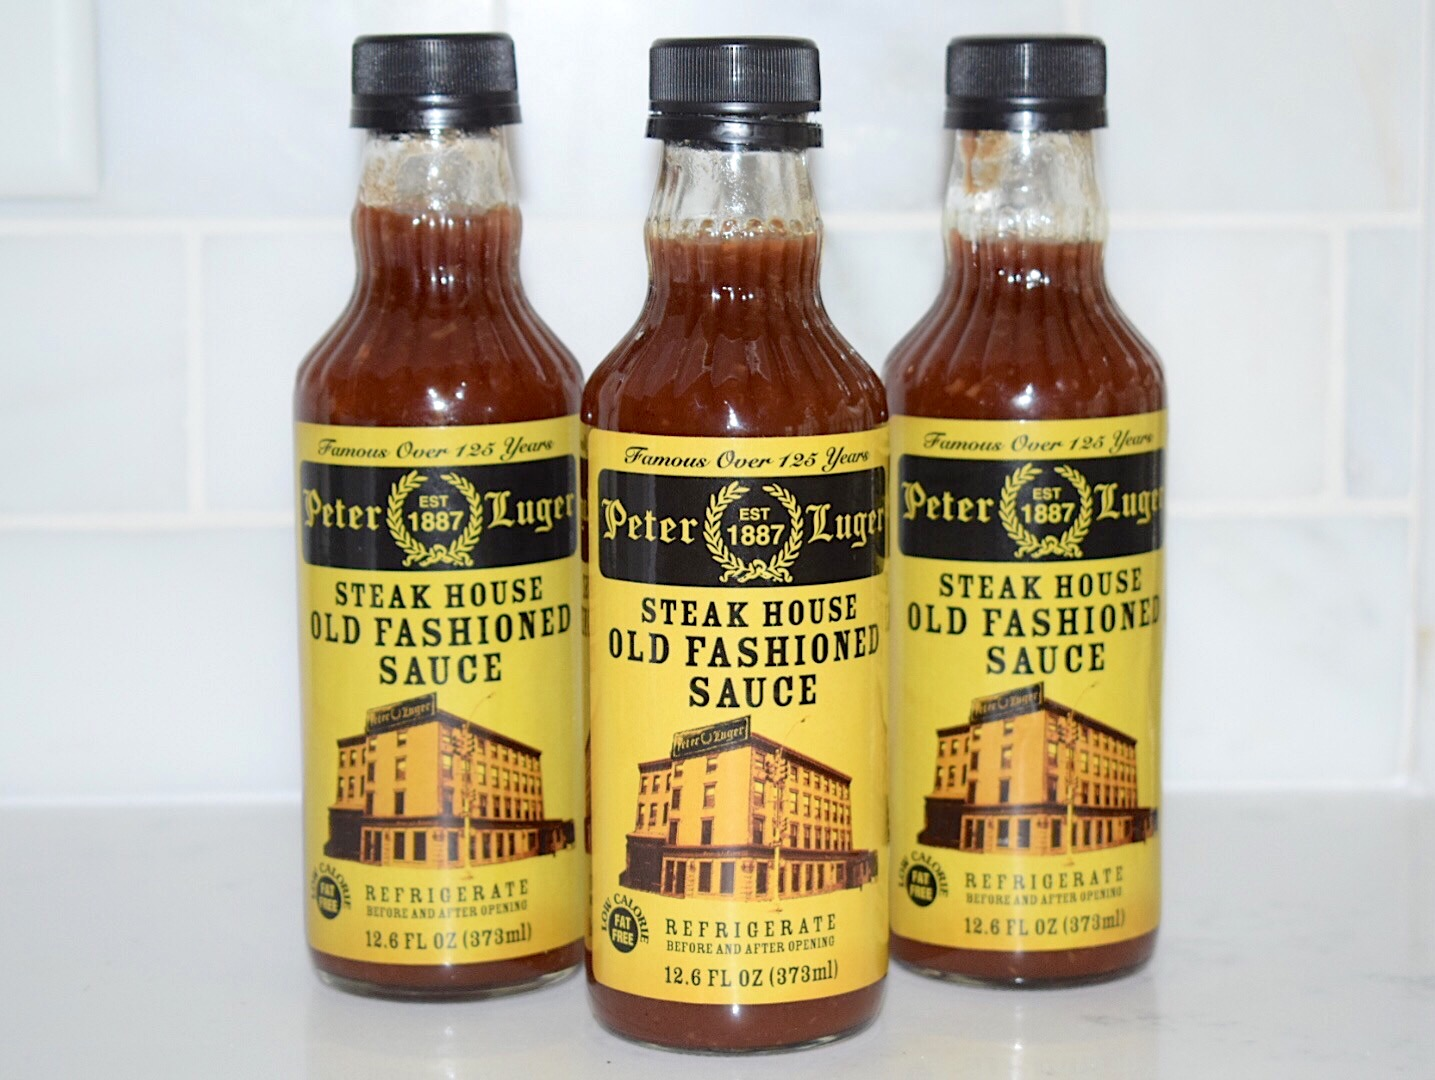 Peter Luger Steak Sauce bottles